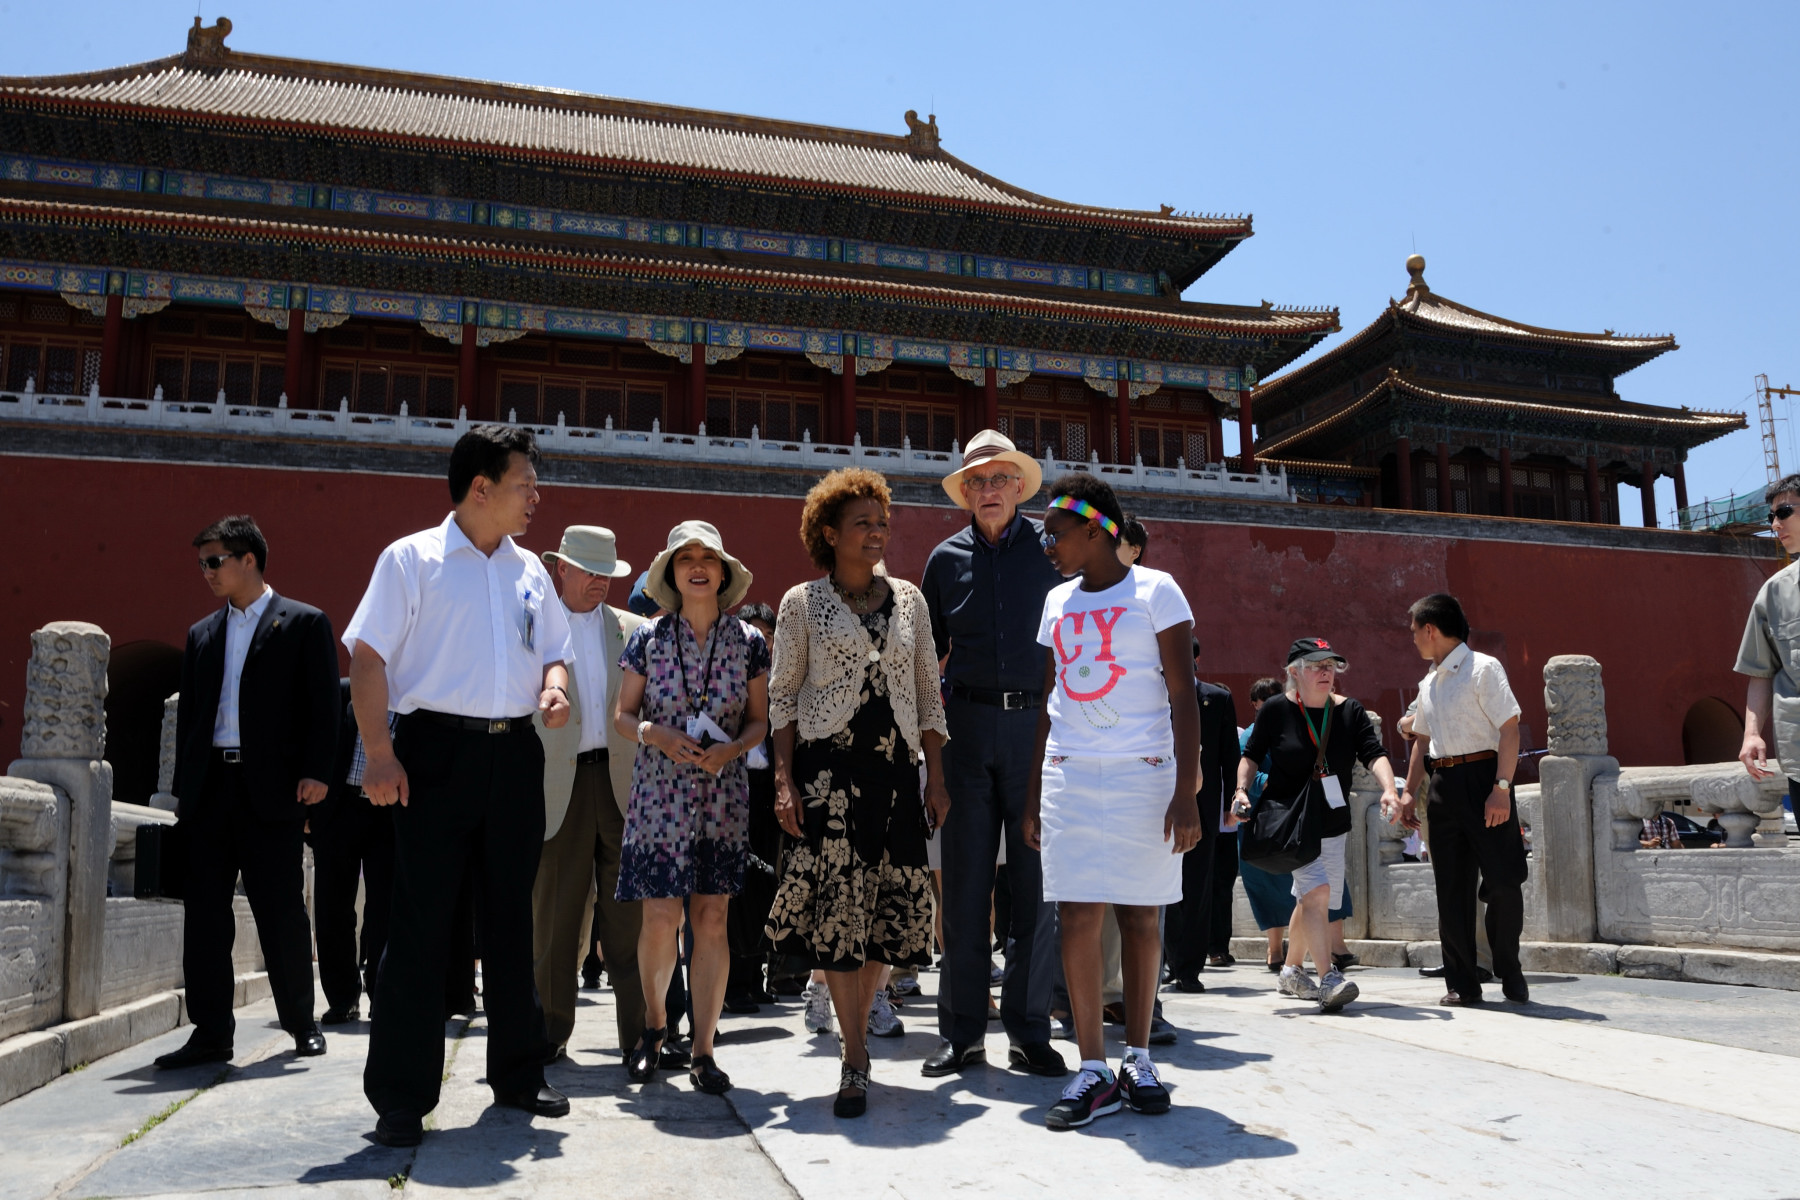 Their Excellencies, Marie-Éden and the delegation also visited the Forbidden City.